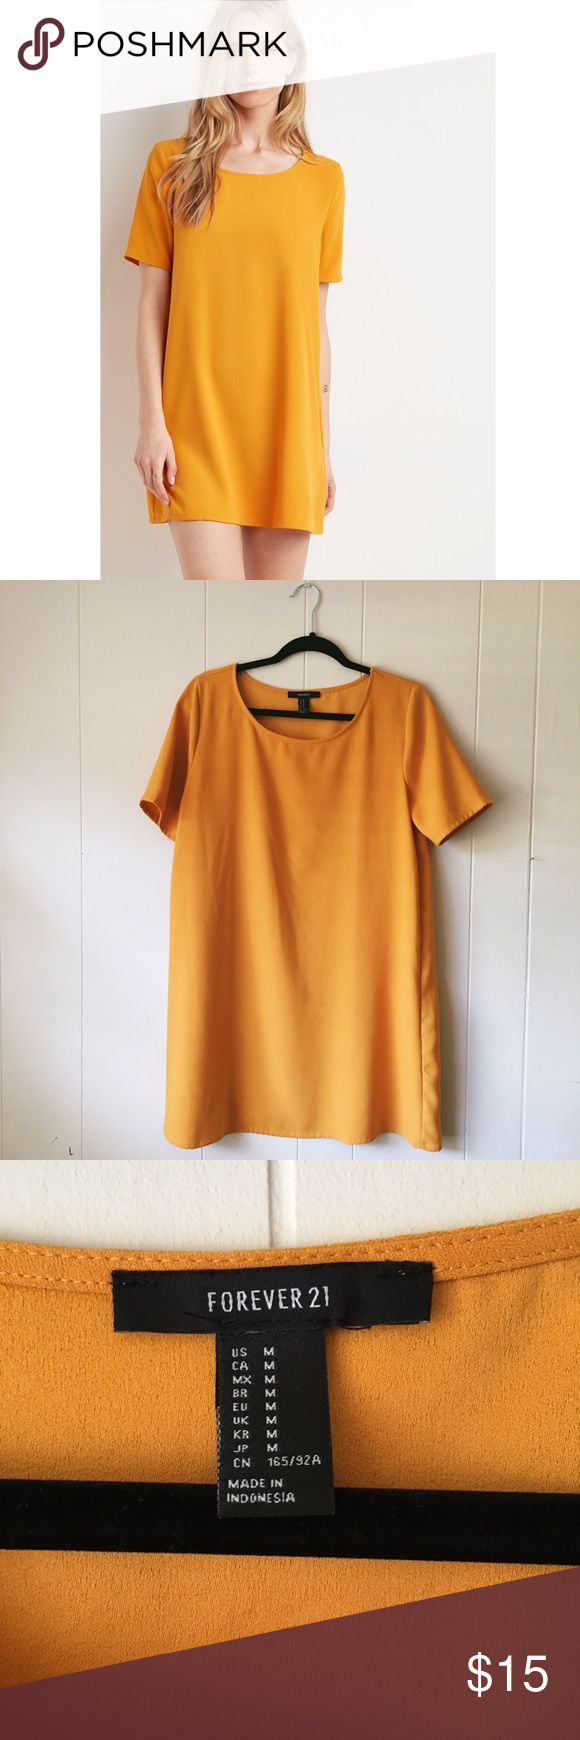 Mustard Colored Dress Worn about 2x's. Forever 21 Dresses Mini